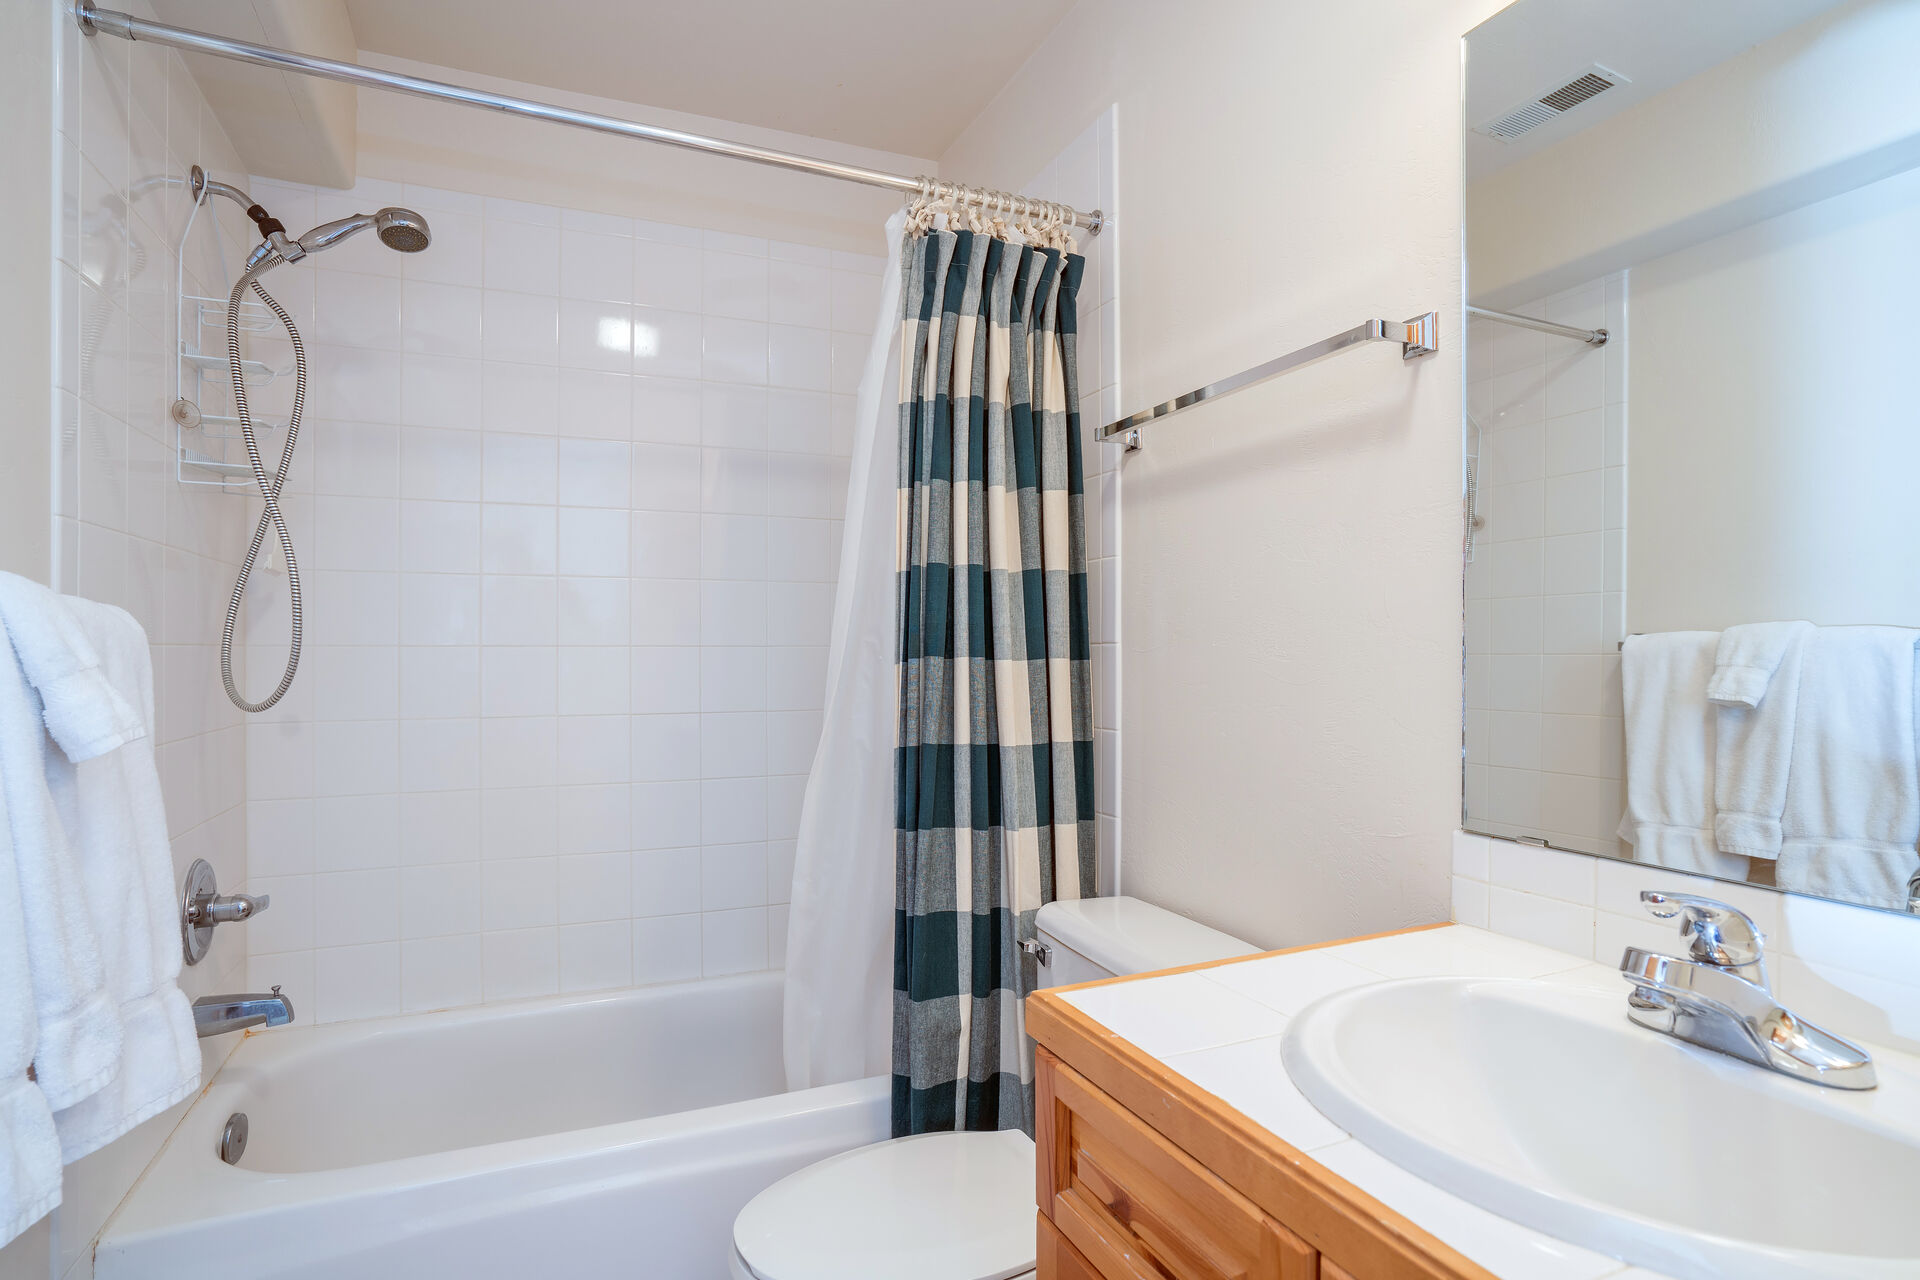 Full Bathroom with Shower/Tub Combo and Vanity